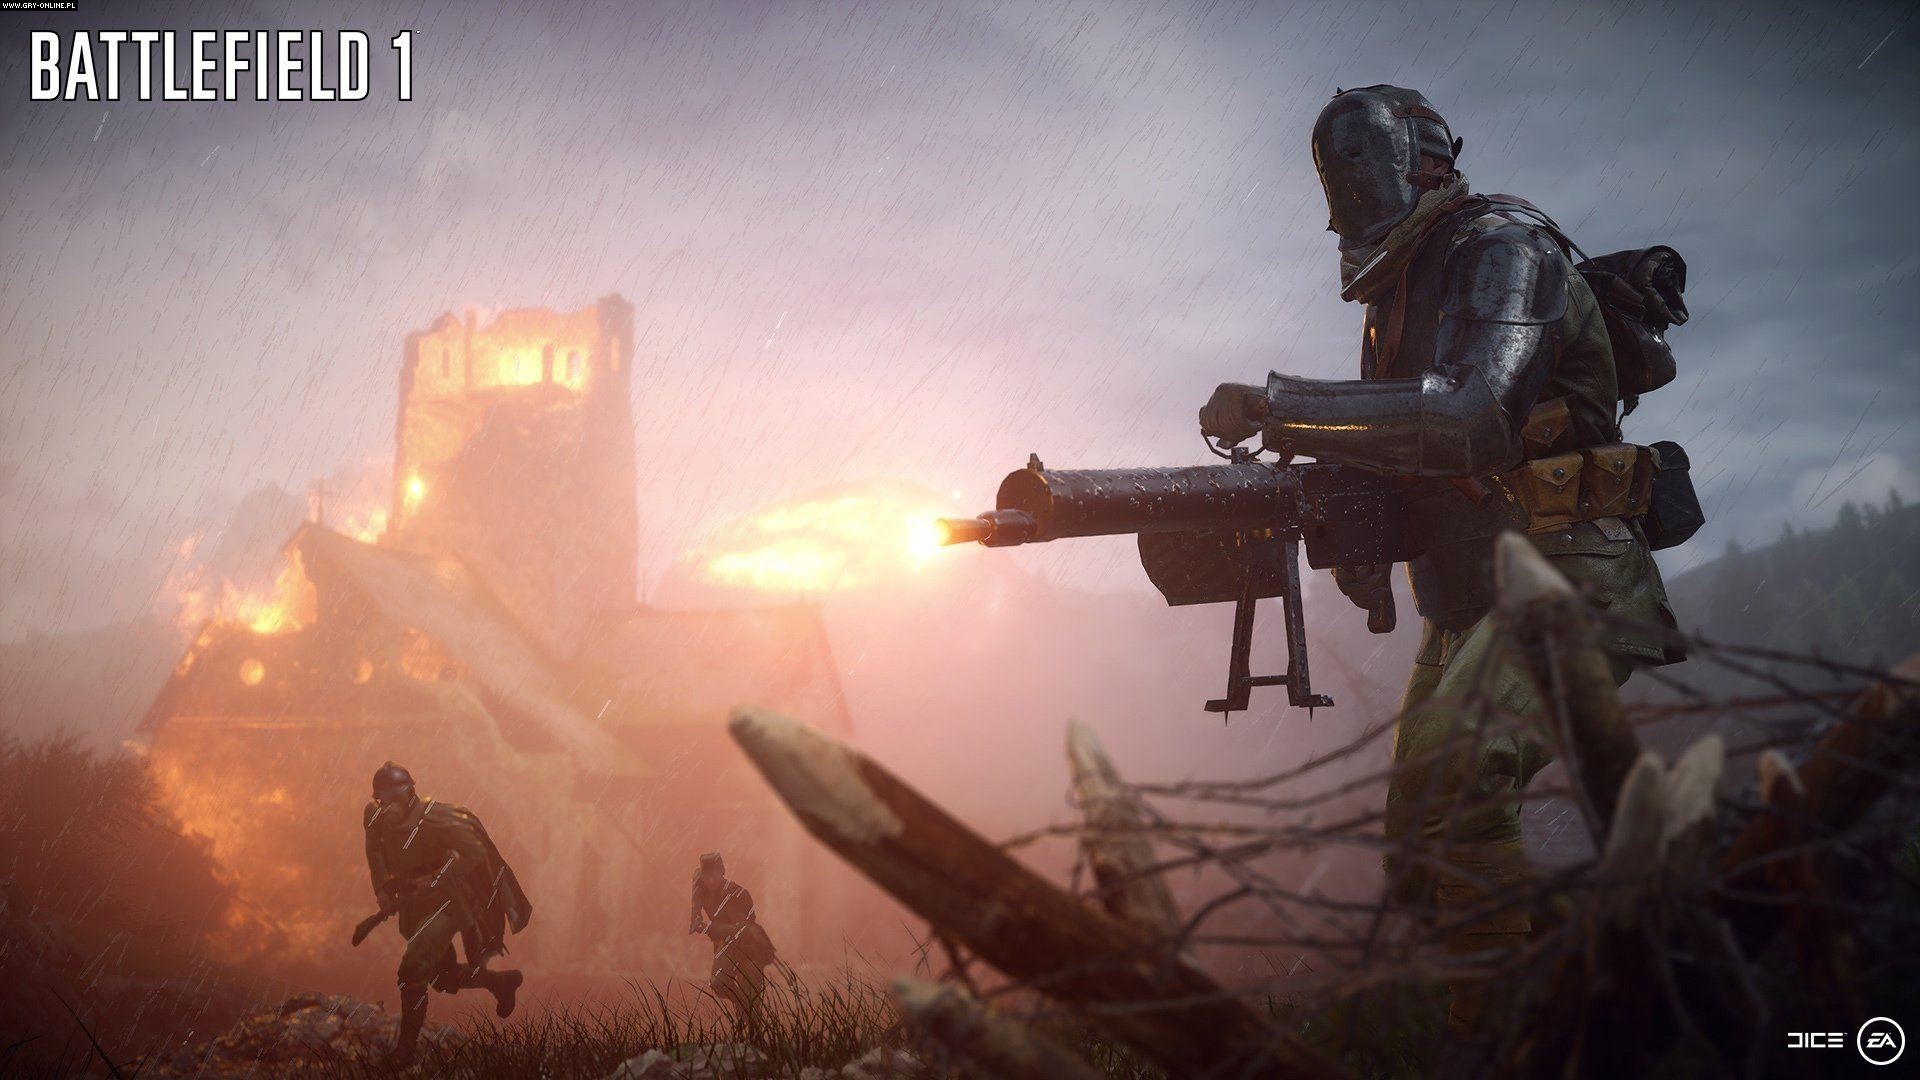 Battlefield 1 PC, PS4, XONE Gry Screen 55/111, EA DICE / Digital Illusions CE, Electronic Arts Inc.